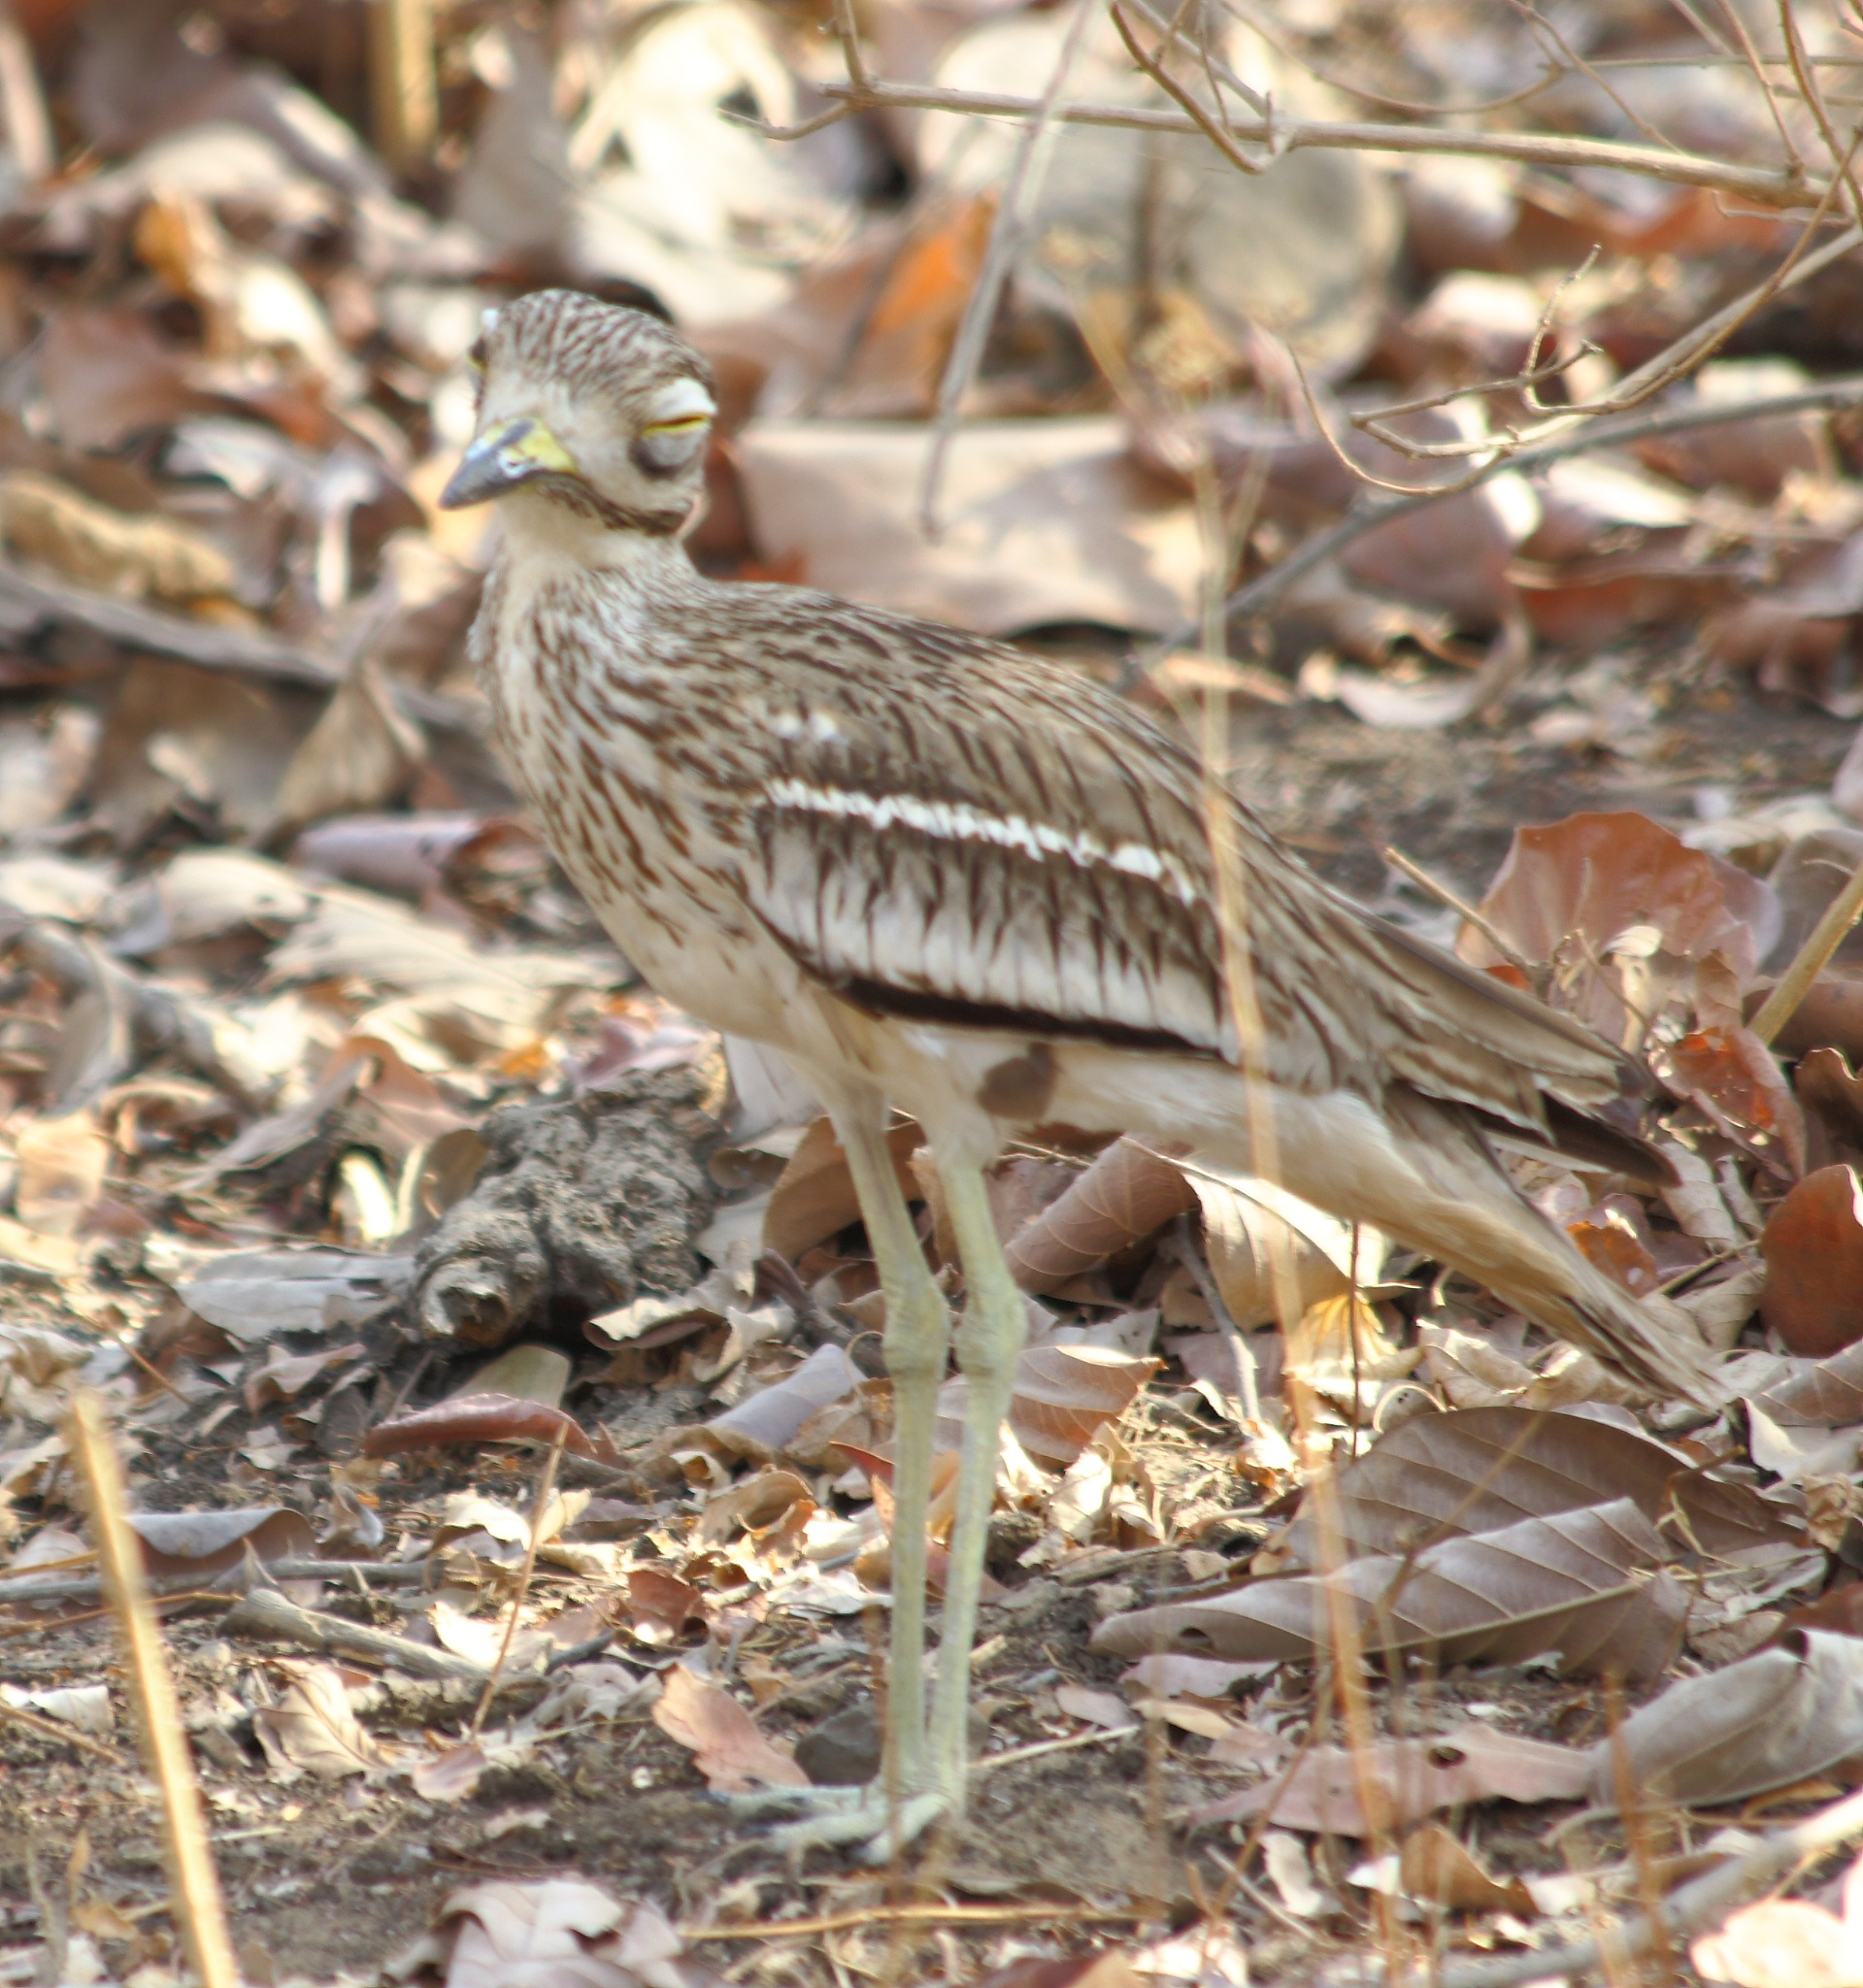 The Indian stone-curlew or Indian thick-knee by pulkit.satwara